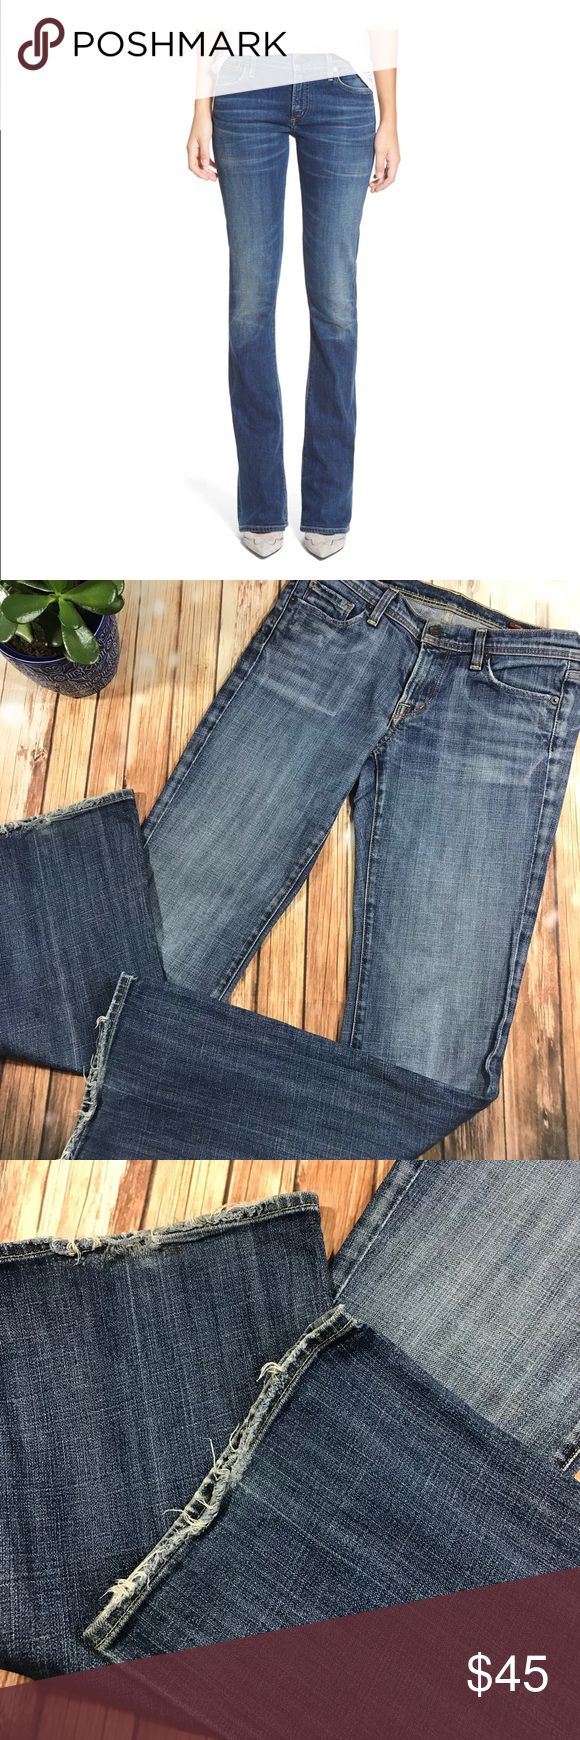 """Citizens of humanity Ingrid 002 Gently used condition, amazing blue COT flare jeans, low waist ( rise 7.5) , stretchy. Waist 15"""", hips 16"""", inseam 32"""". The back  bottom of the jeans are worn but can be hammed and adjusted to desirable inseam. Citizens Of Humanity Jeans Flare & Wide Leg"""